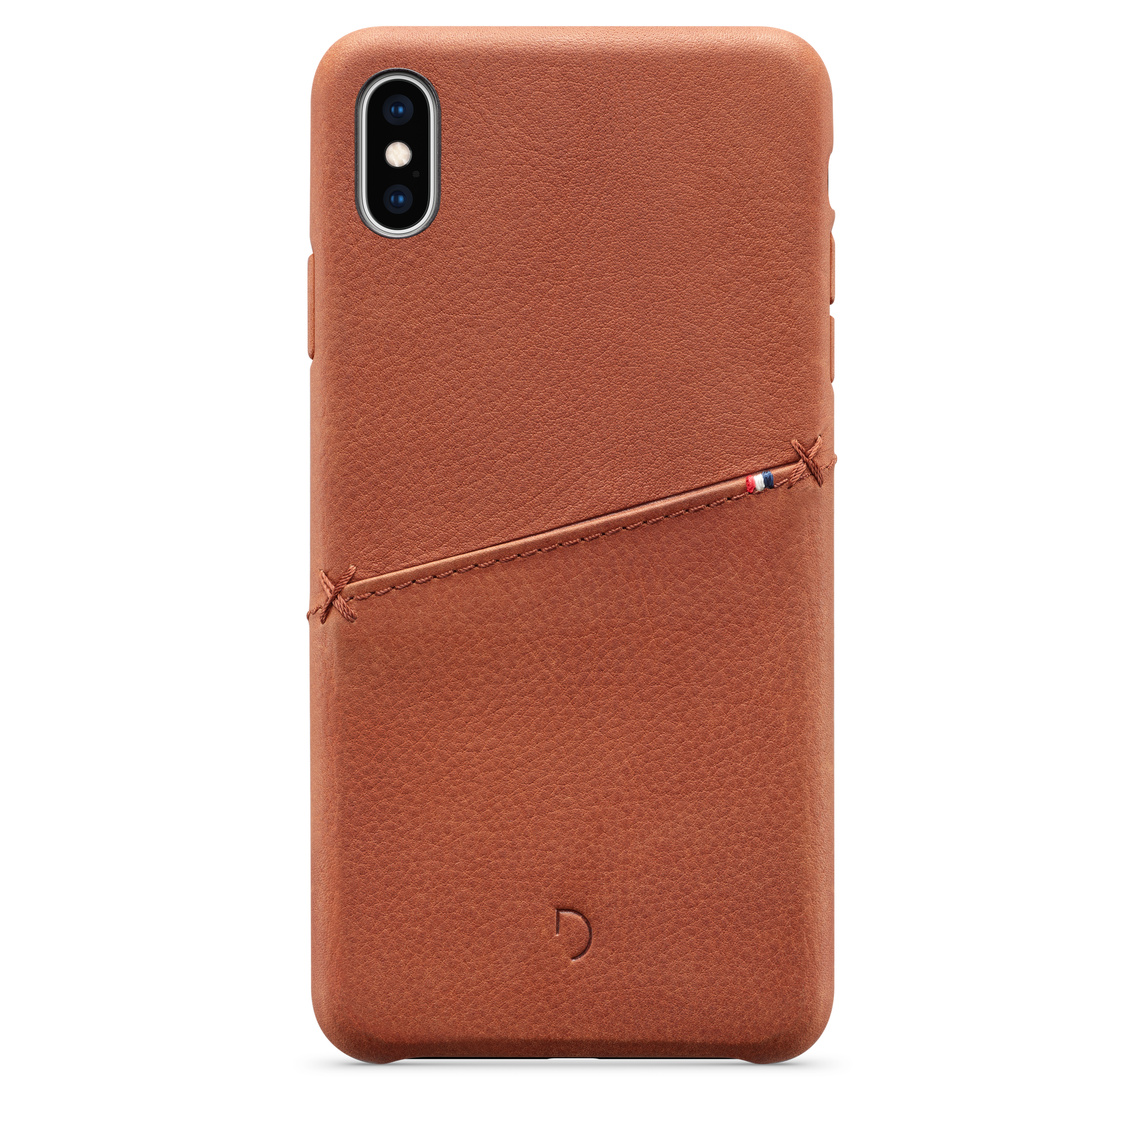 reputable site f4bd6 d16e1 Decoded Leather Snap-On Case for iPhone XS Max